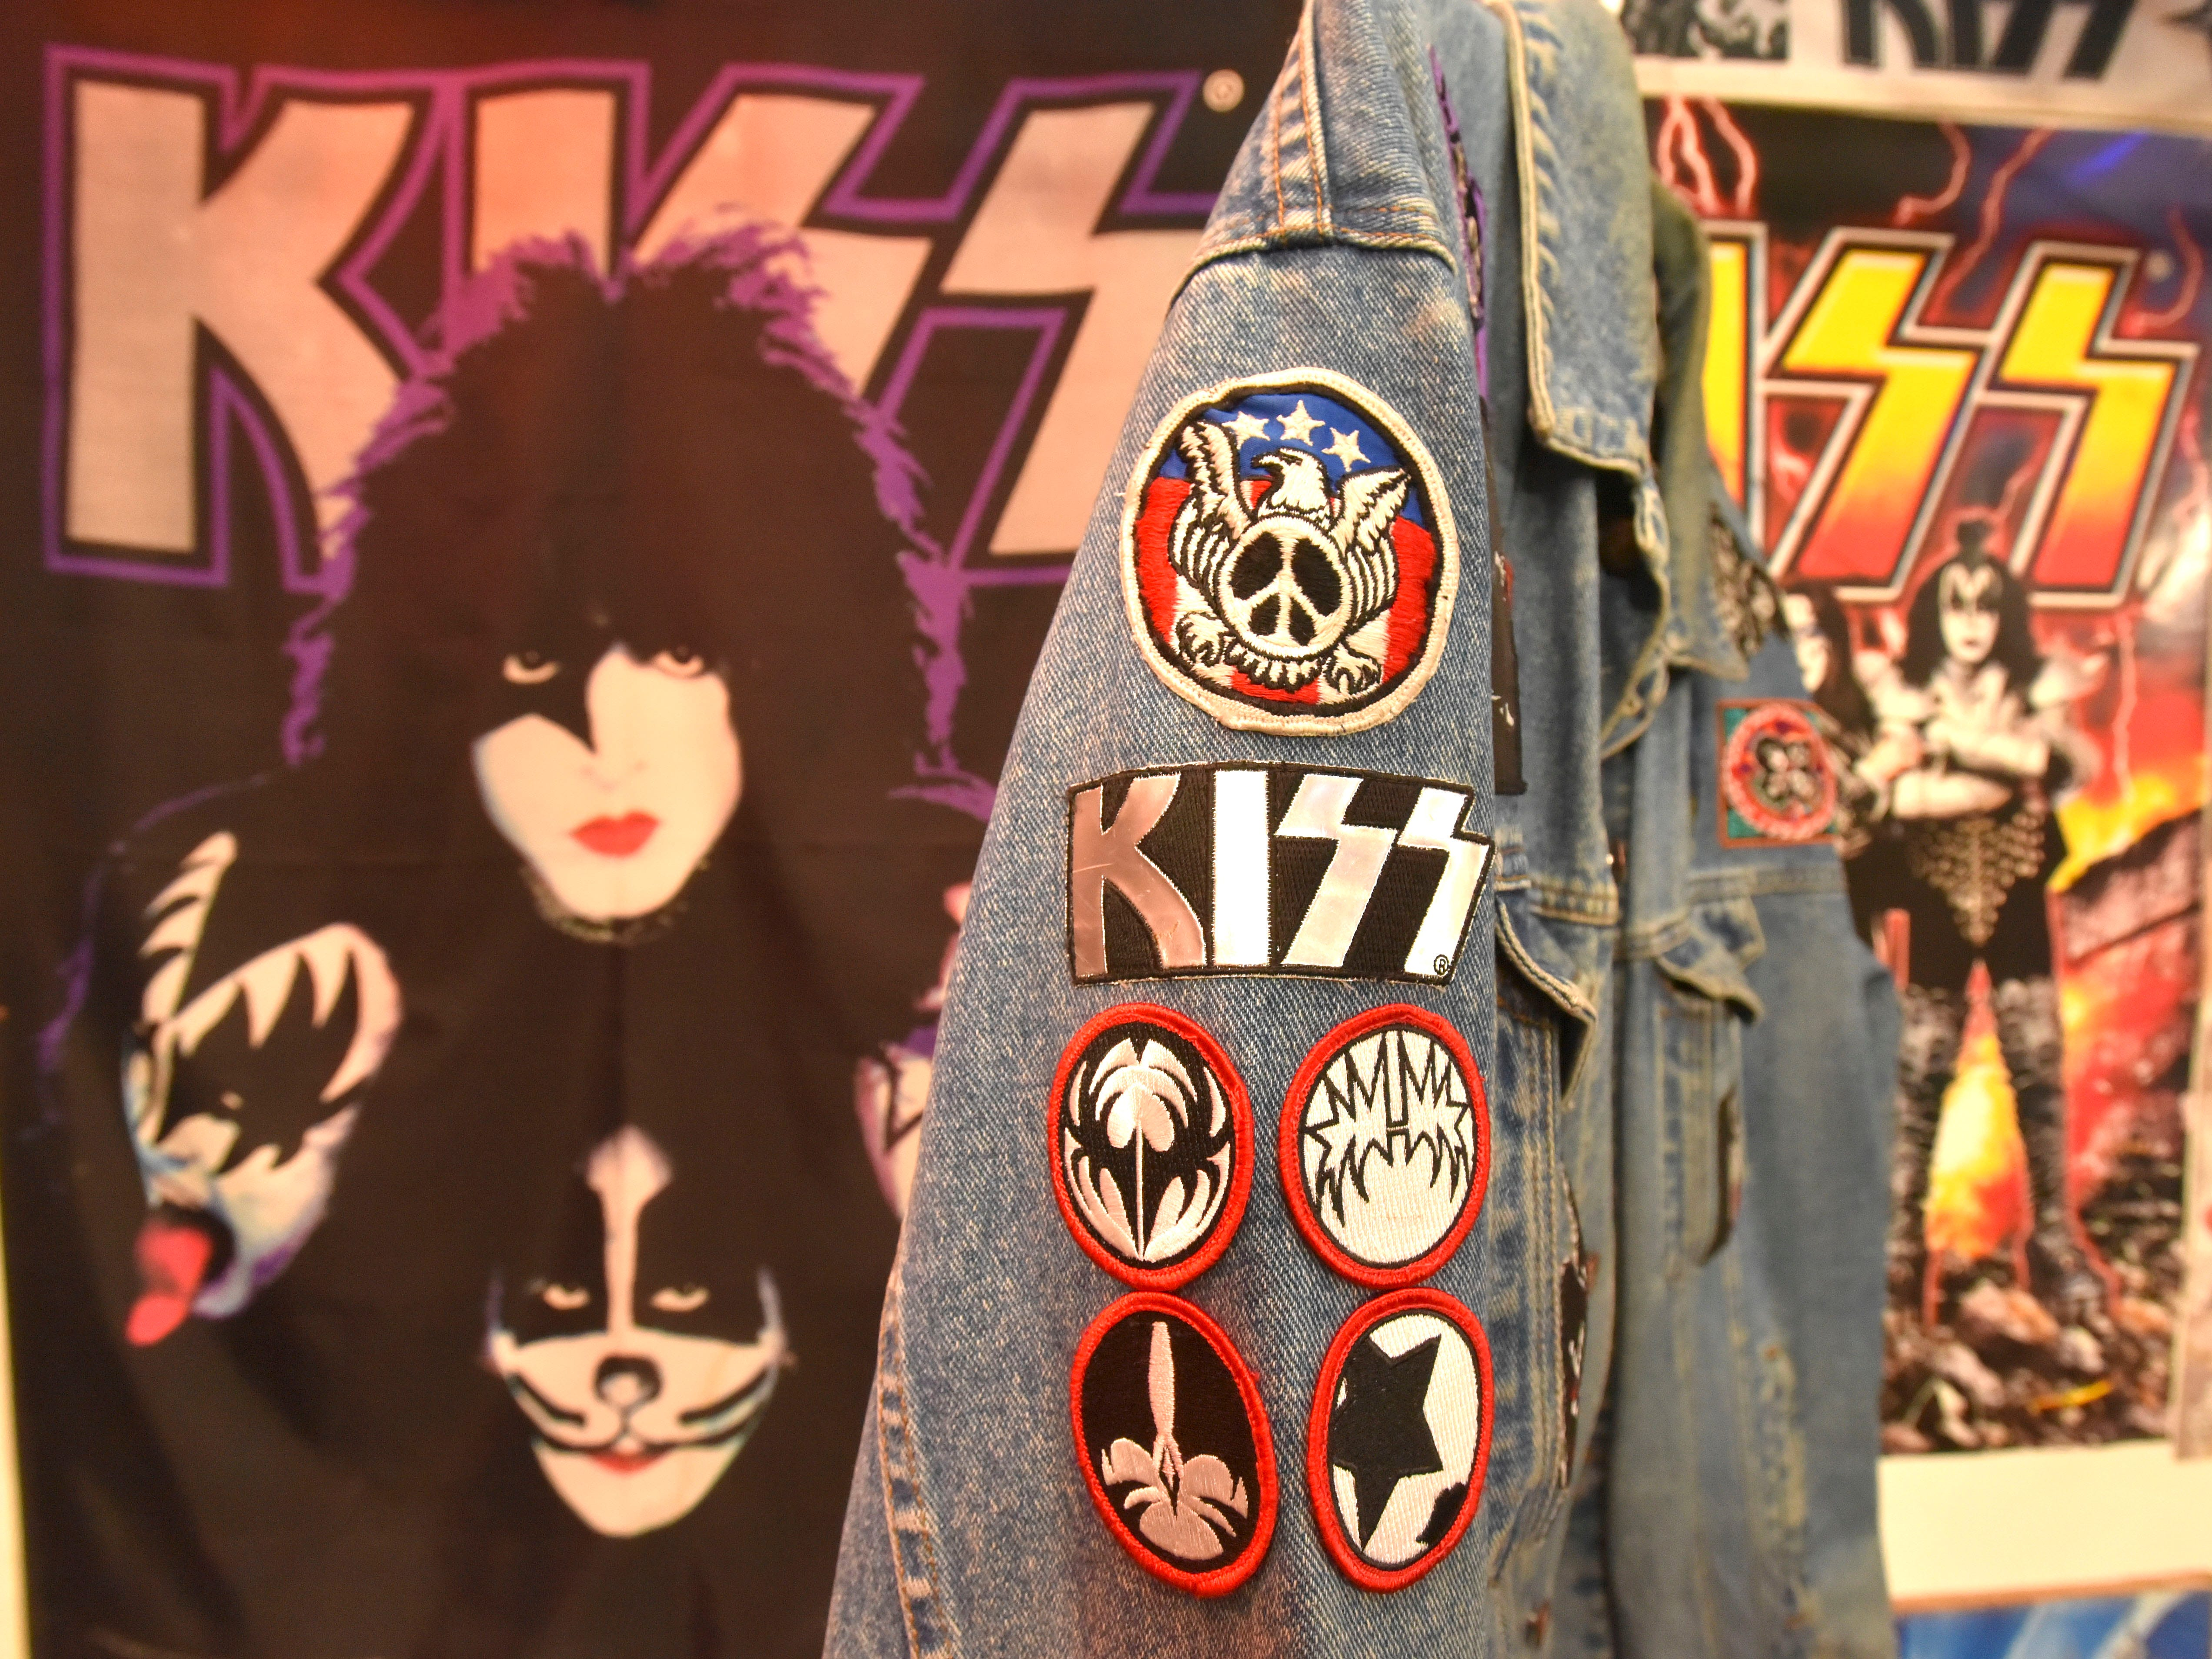 This is Pakulski's KISS jacket with 39 patches.